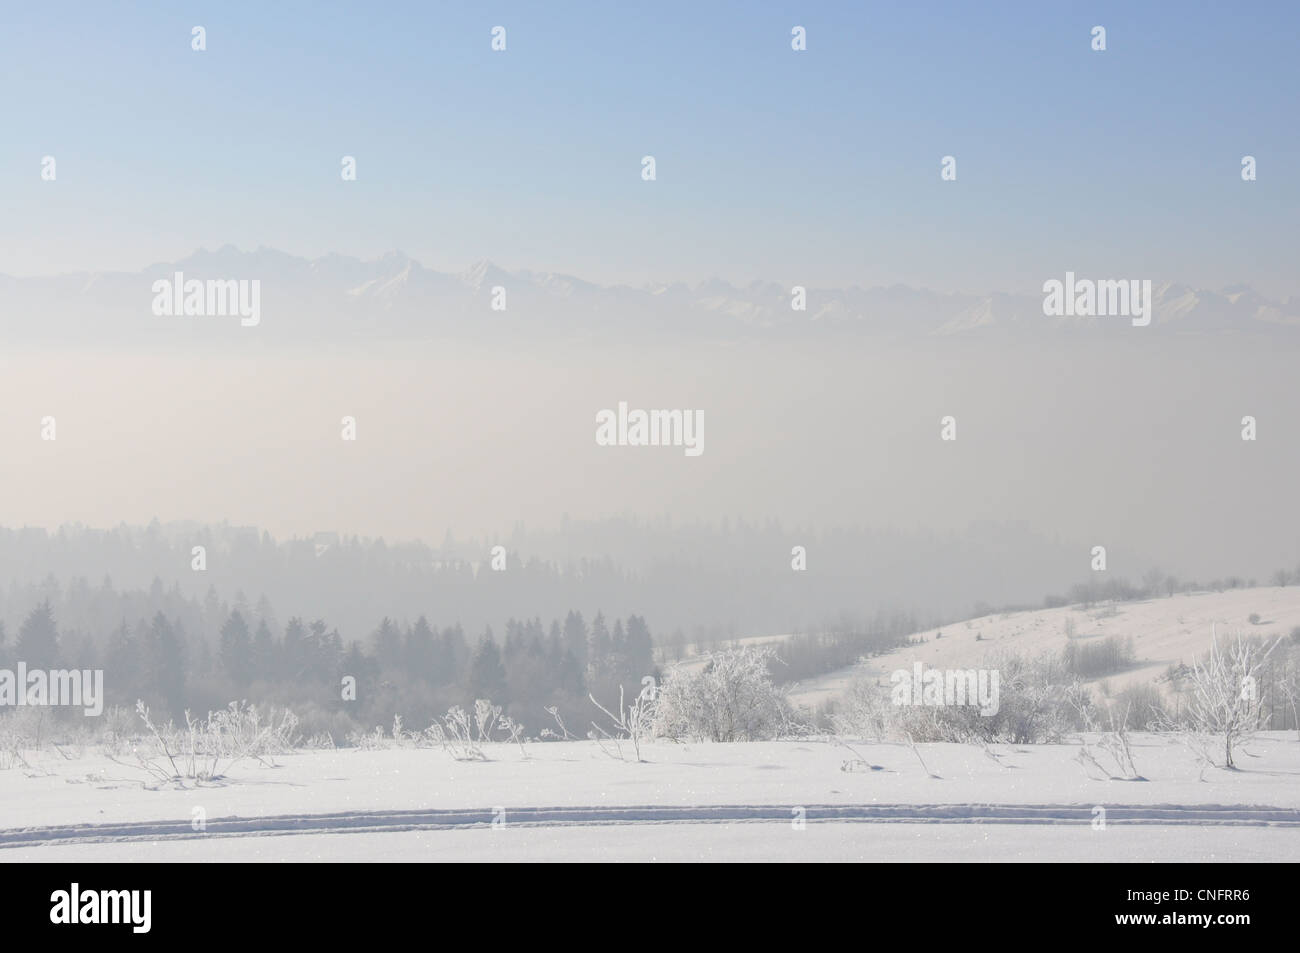 Pieniny Mountains, Karpaty, Poland in winter - landscape view - Stock Image